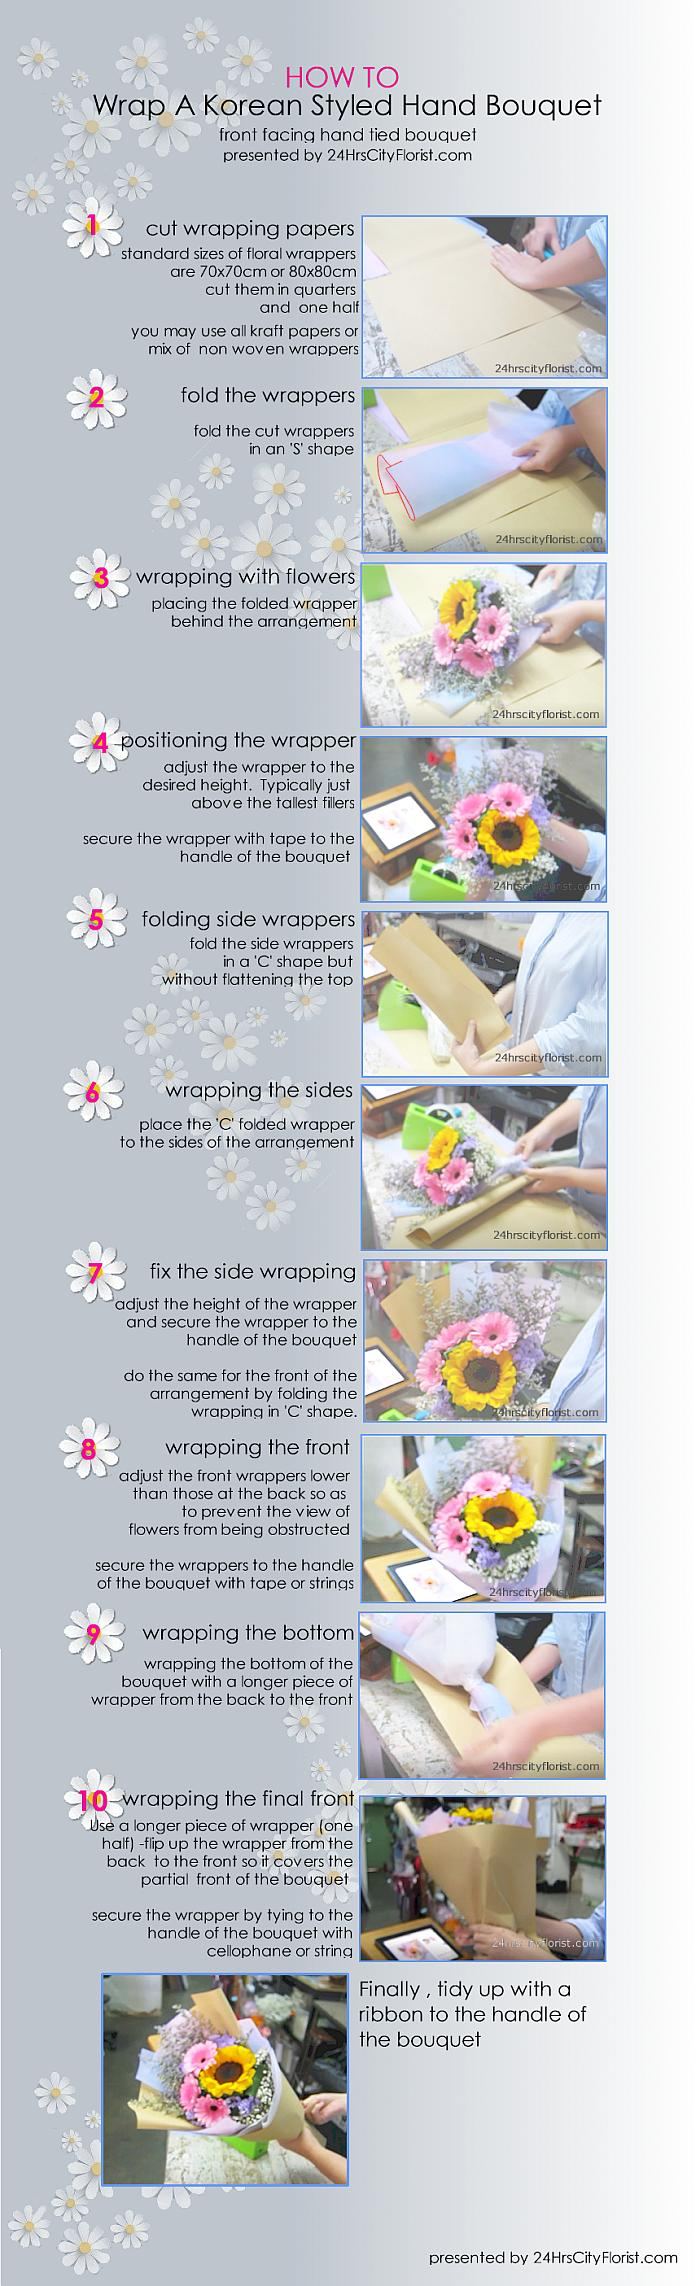 how to wrap a Korean styled hand bouquet